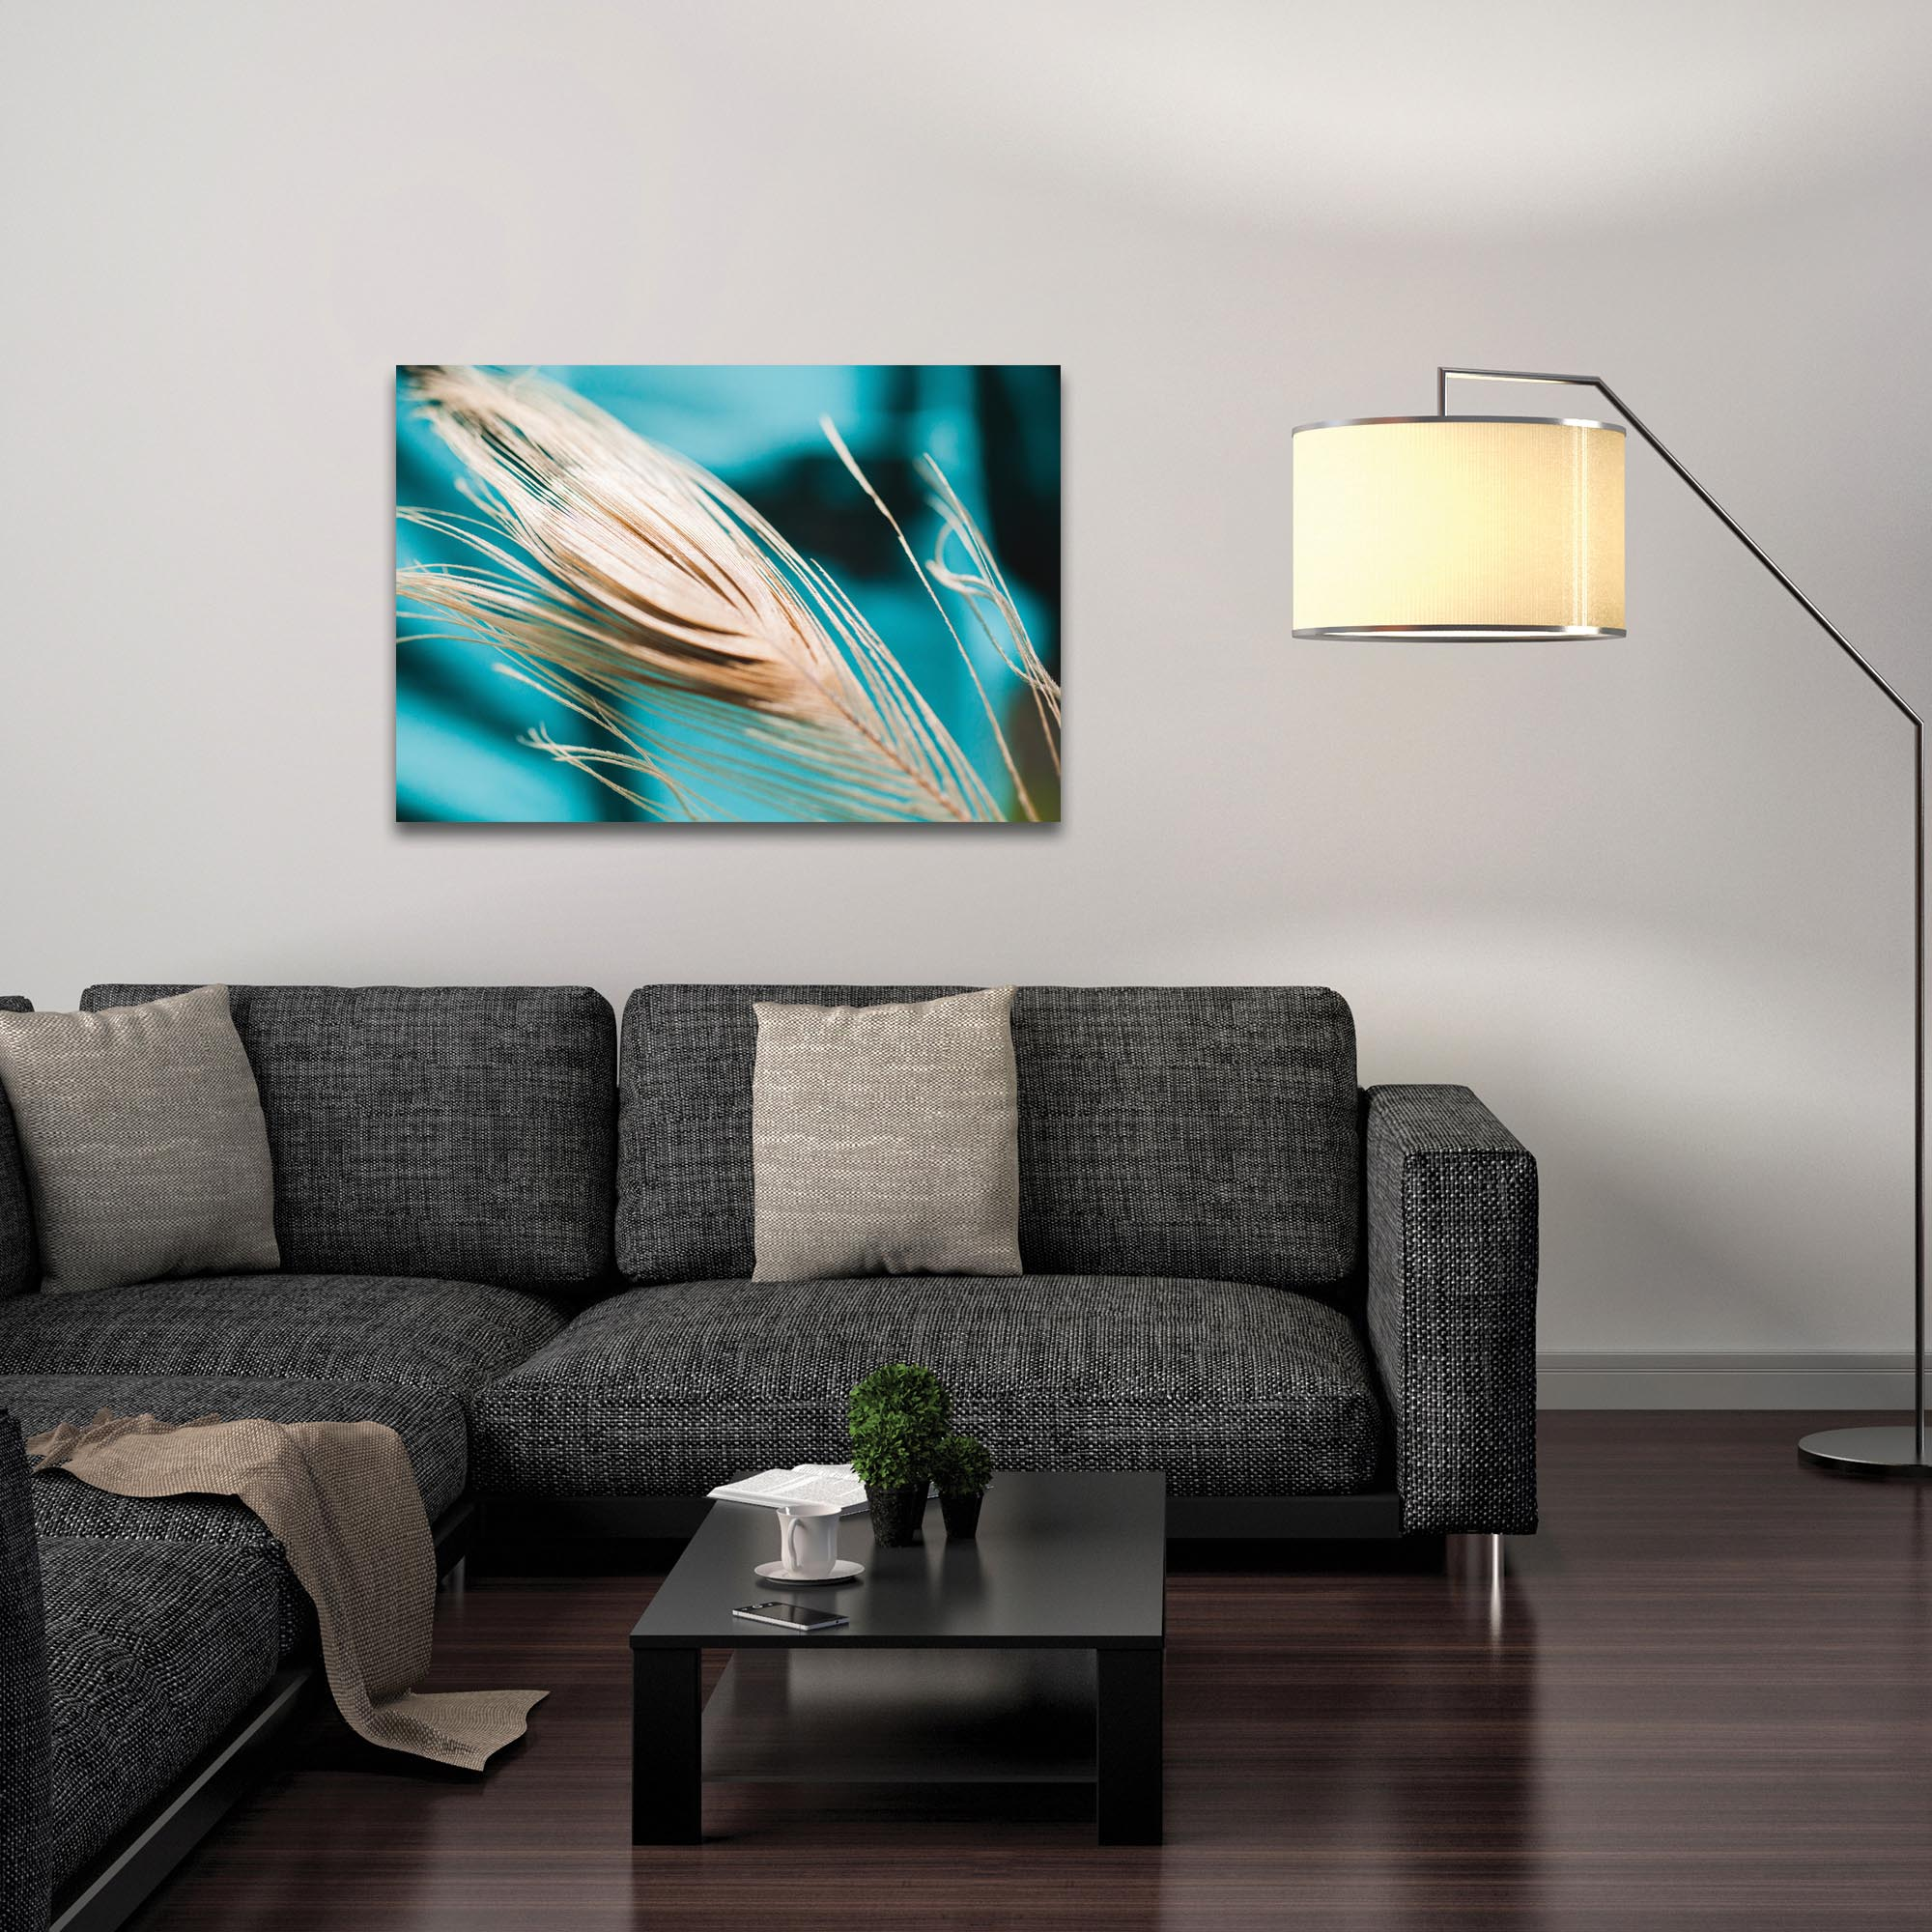 Nature Photography 'Turqoise Feather' - Bird Feathers Art on Metal or Plexiglass - Lifestyle View